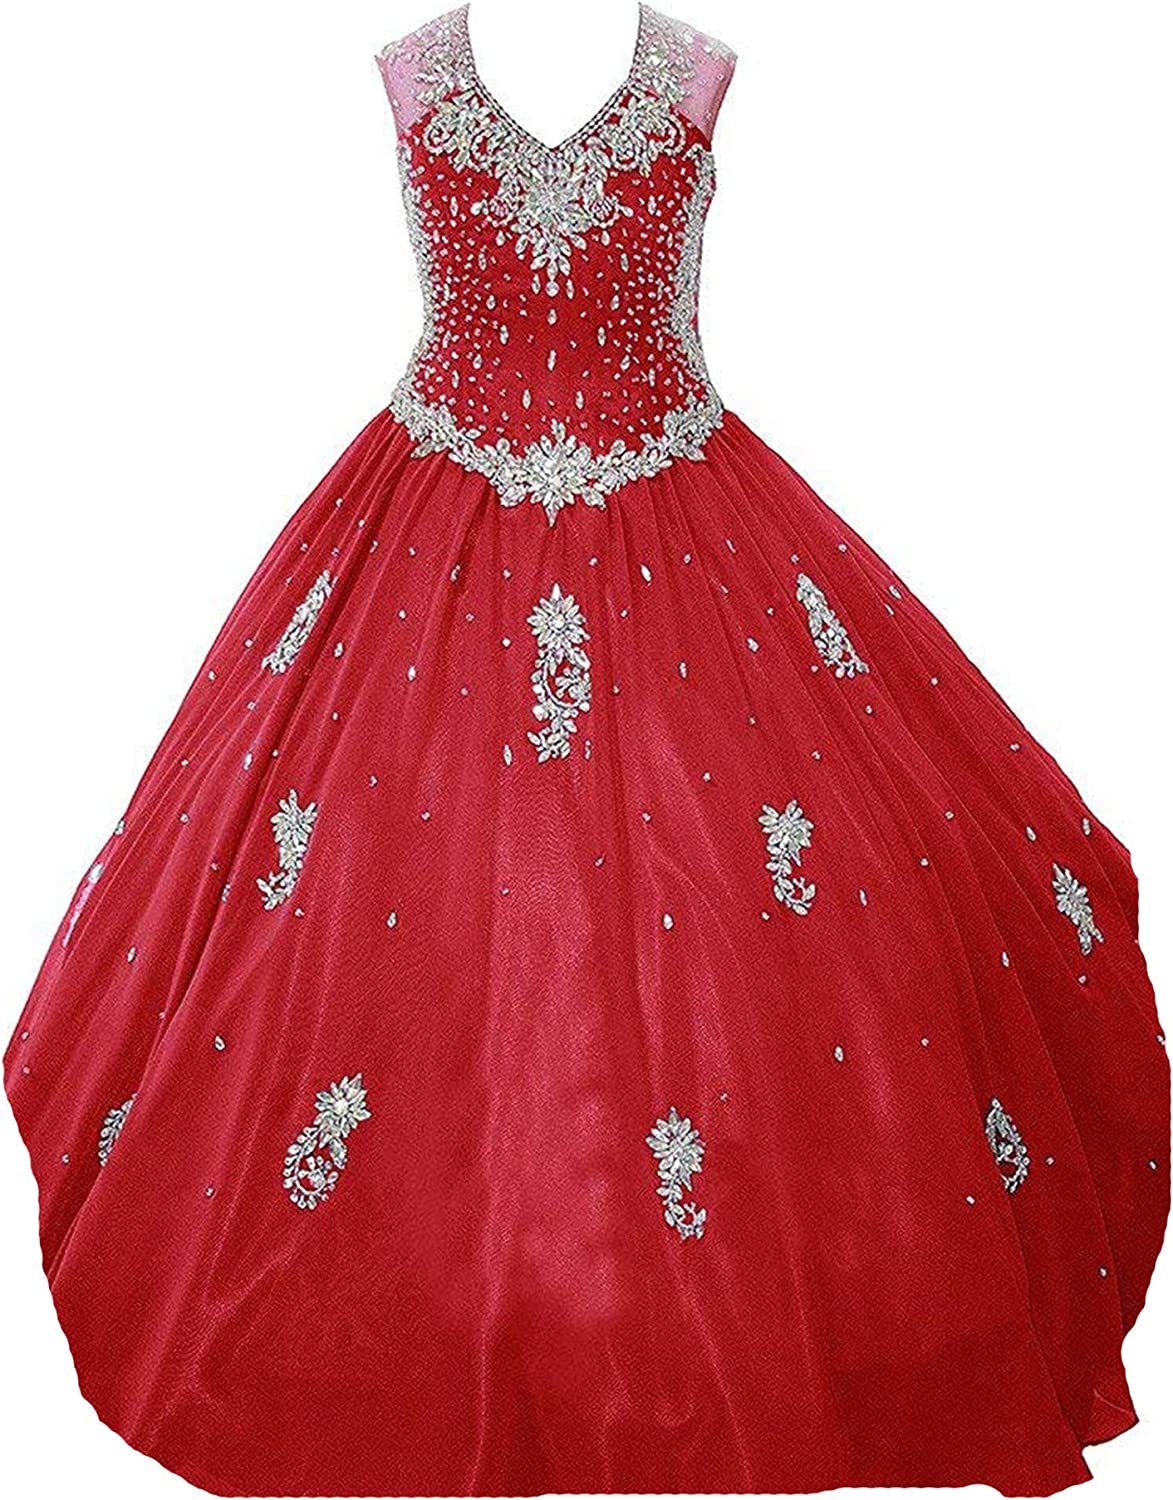 Wenli Girls Floor Length Glitz G Pageant Princess Dresses Formal Sale Special Free Shipping New Price